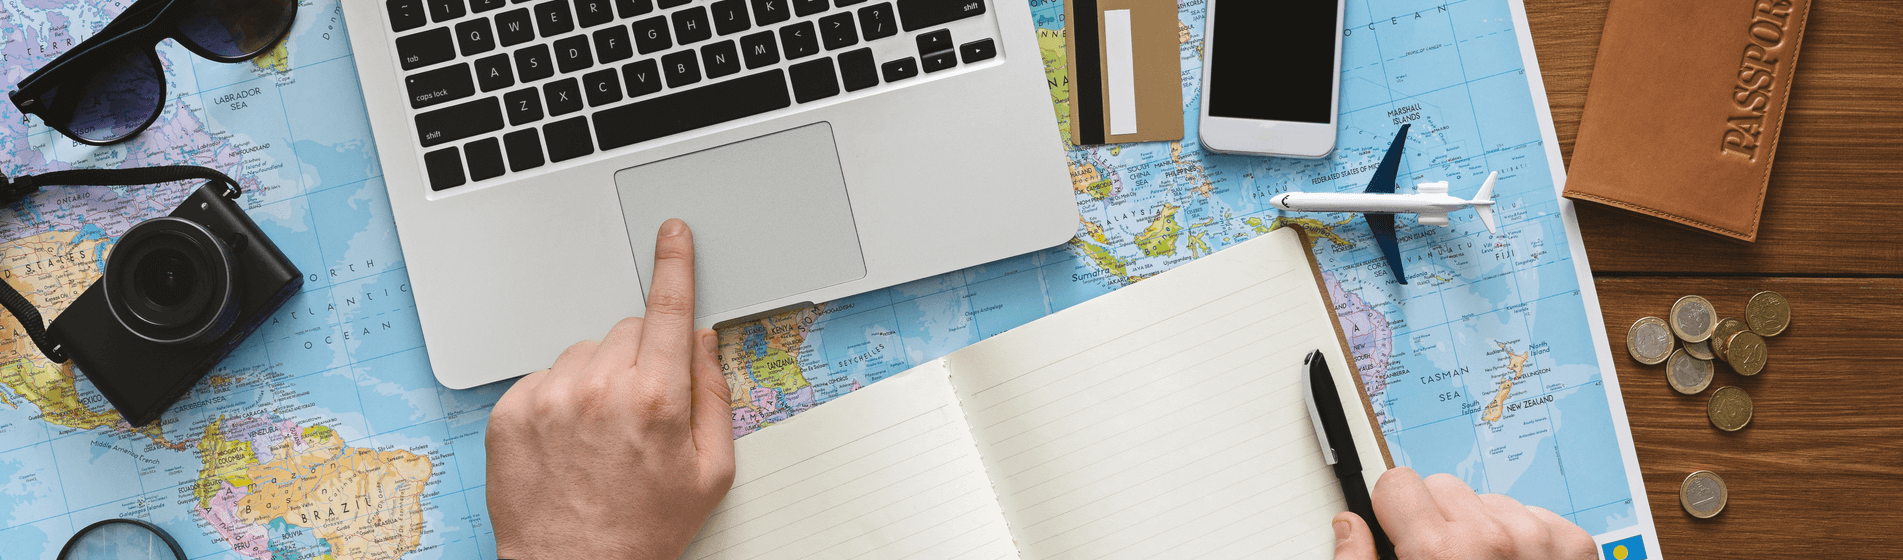 Why You Need a Location-Independent Business in 2021